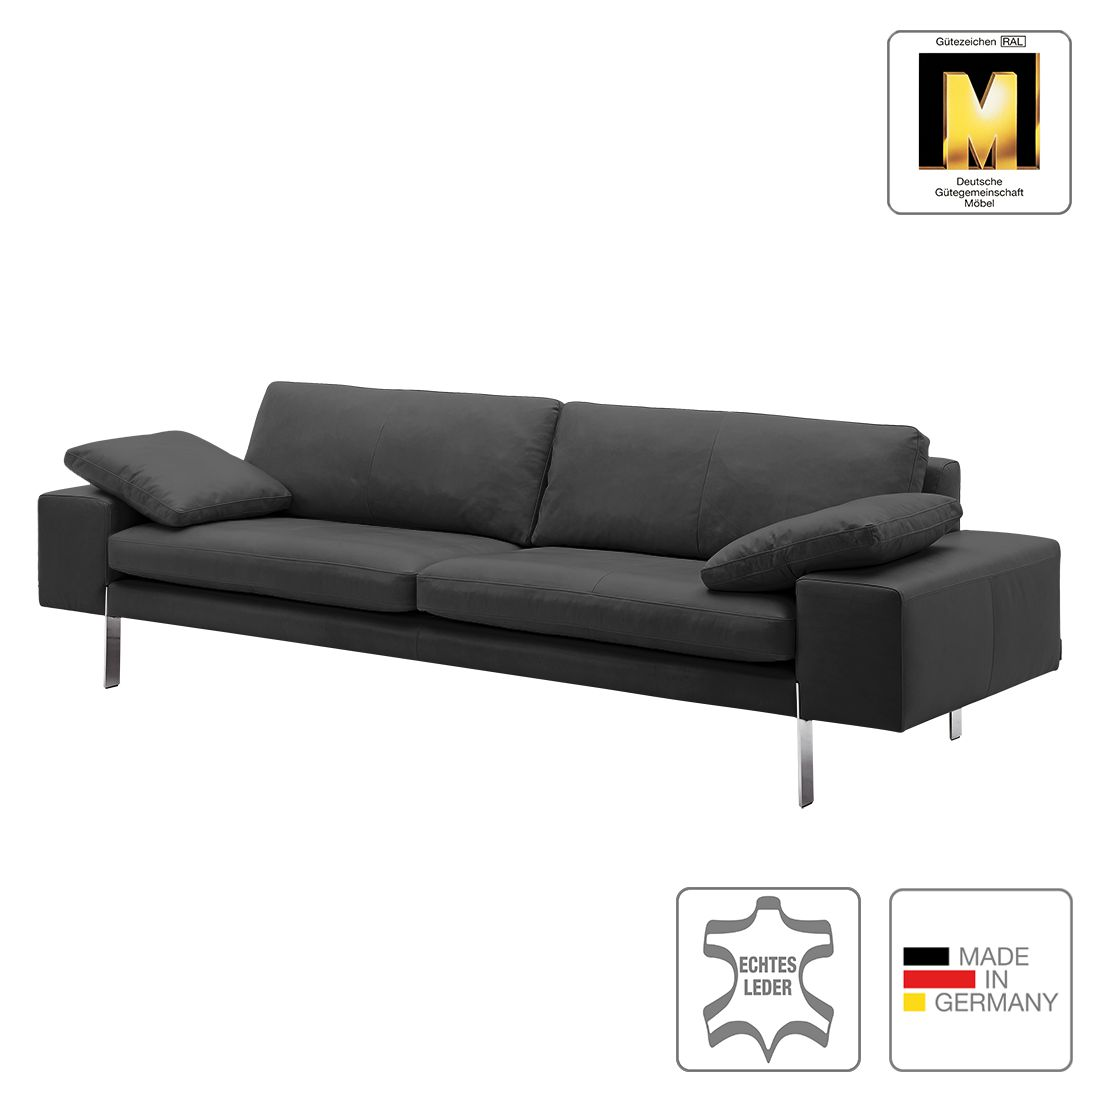 sofa topal 4 sitzer echtleder anthrazit 2 kissen machalke polsterwerkst tten g nstig. Black Bedroom Furniture Sets. Home Design Ideas